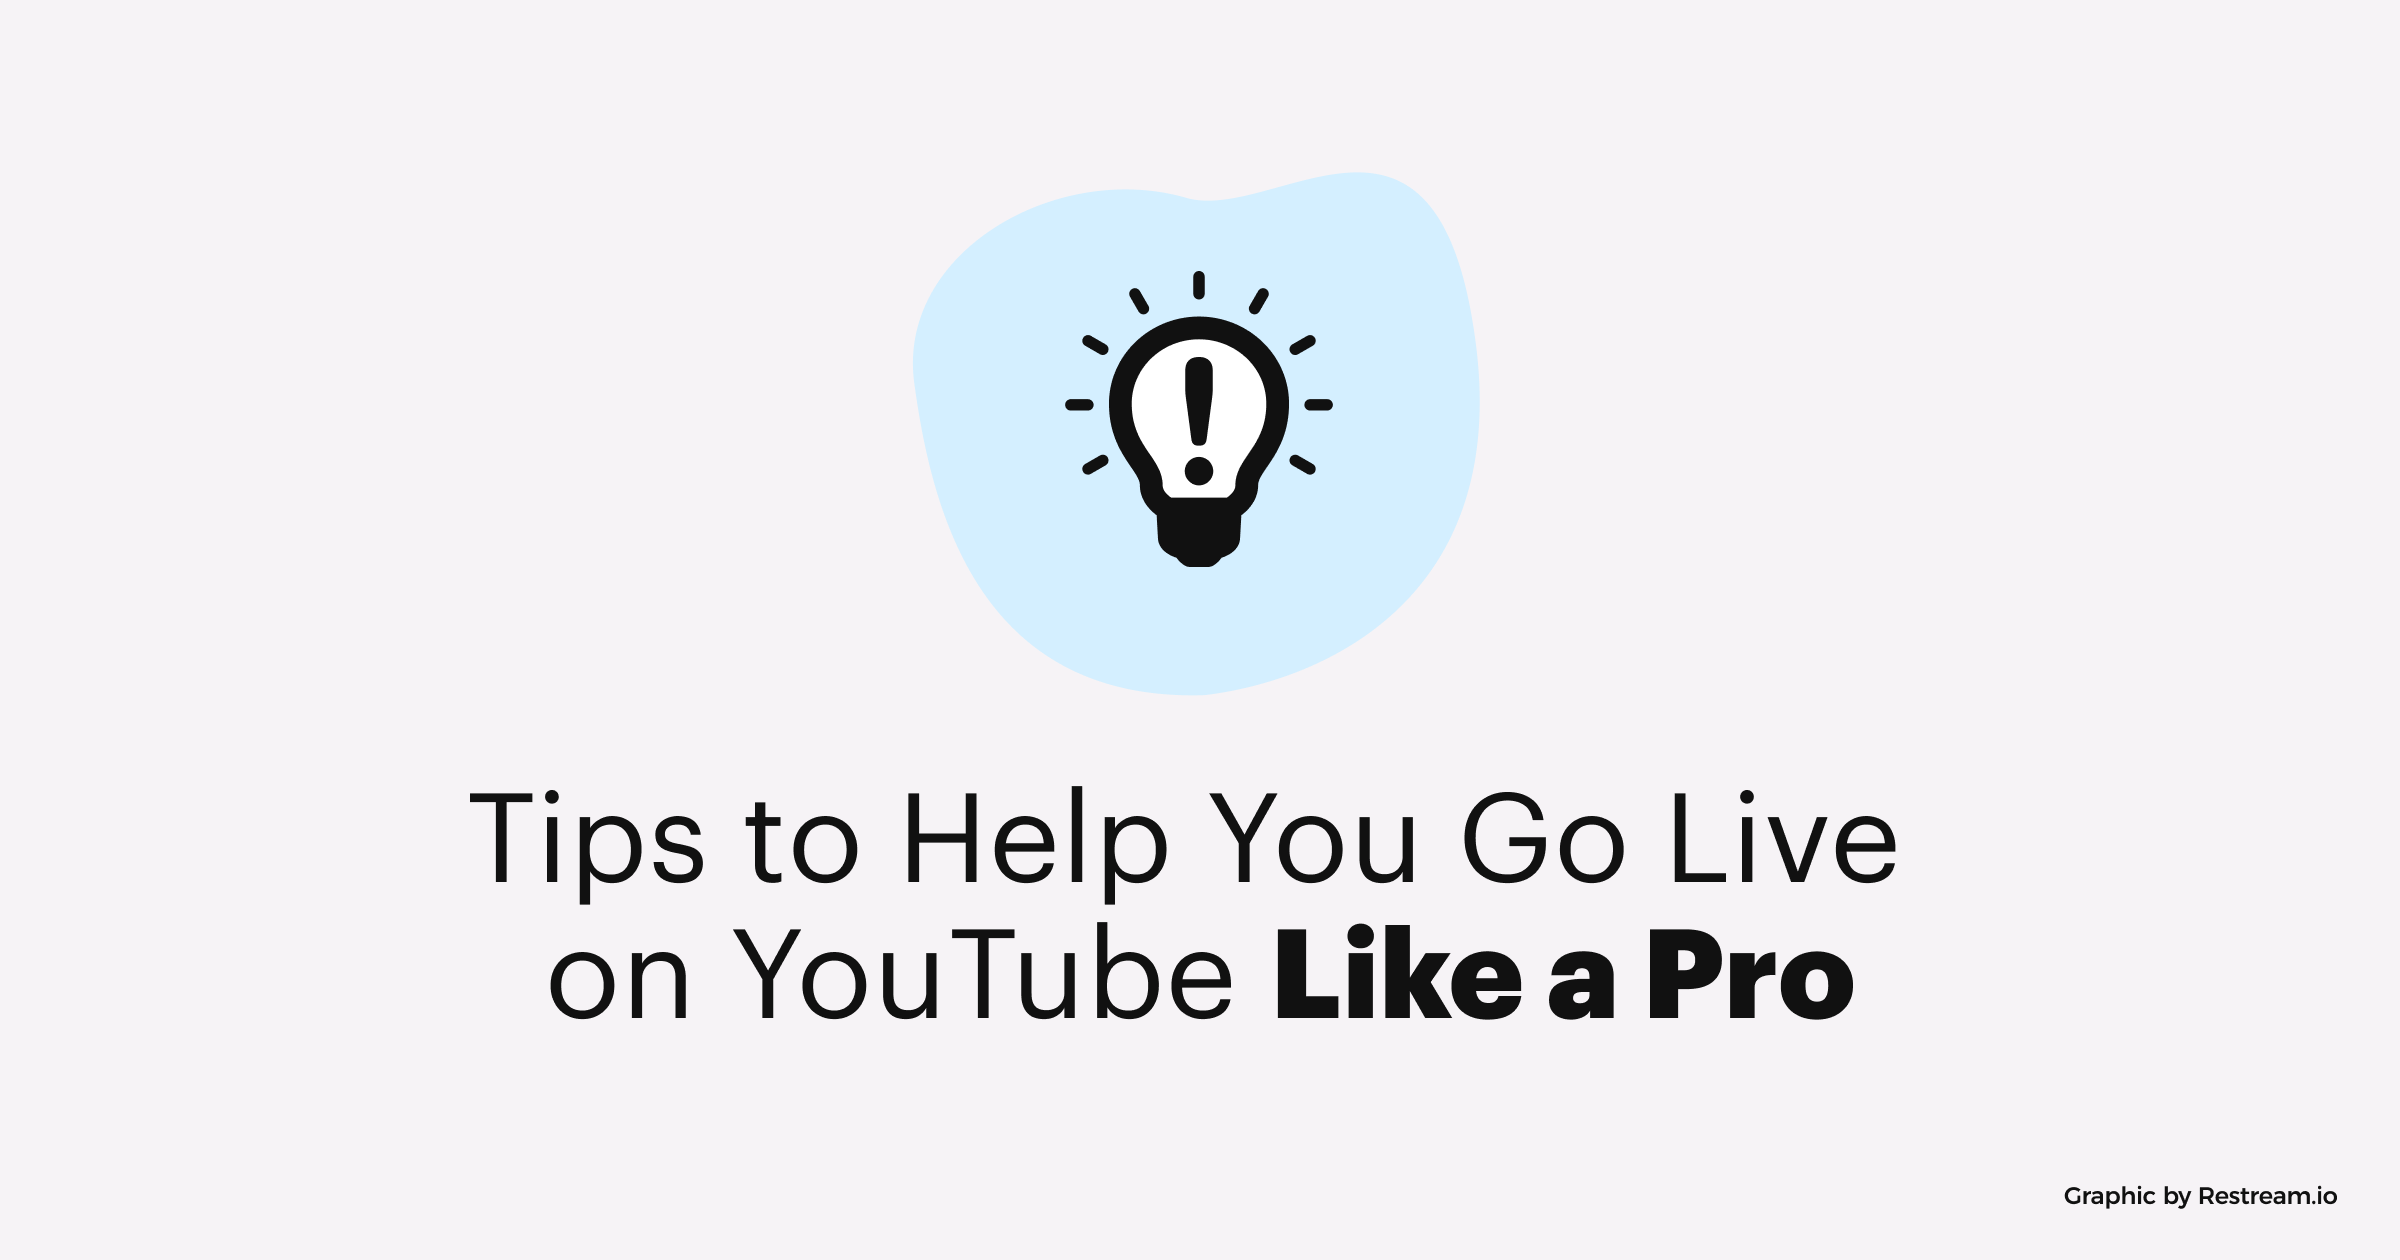 Tips to Help You Go Live to YouTube Like a Pro